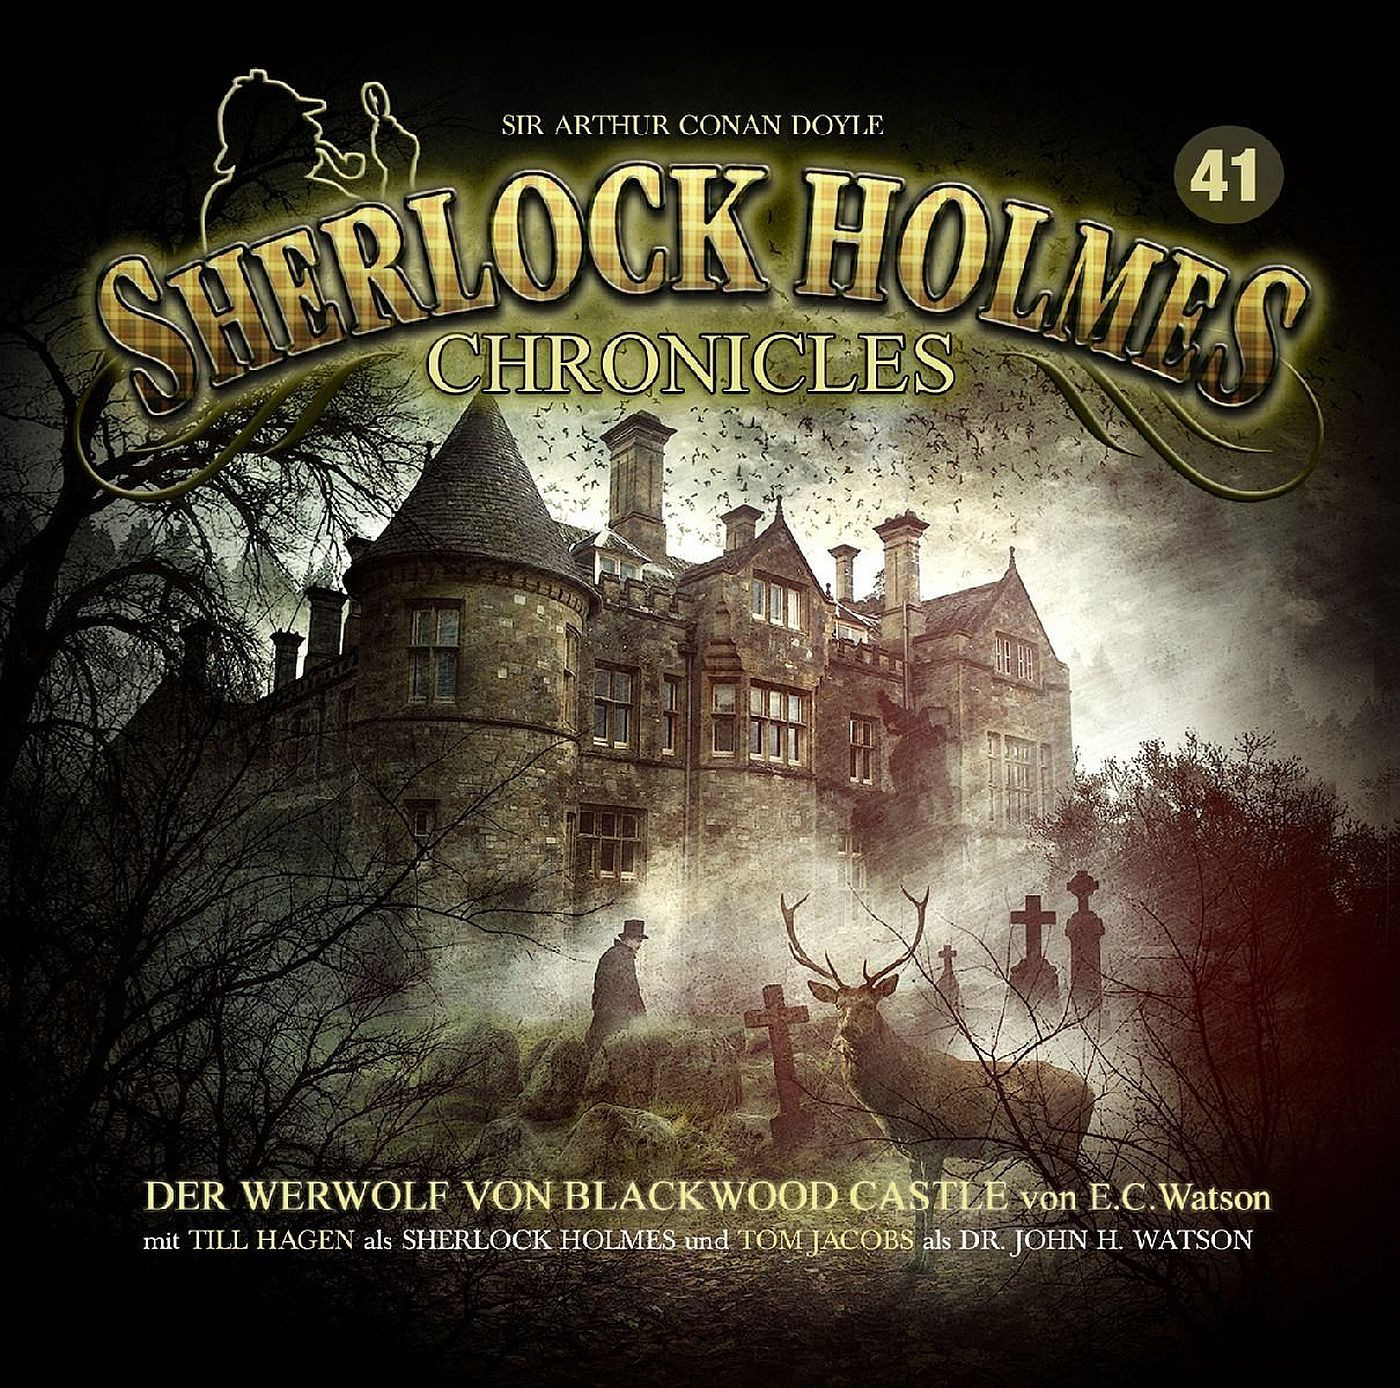 Sherlock Holmes Chronicles 41 Der Werwolf von Blackwood Castle